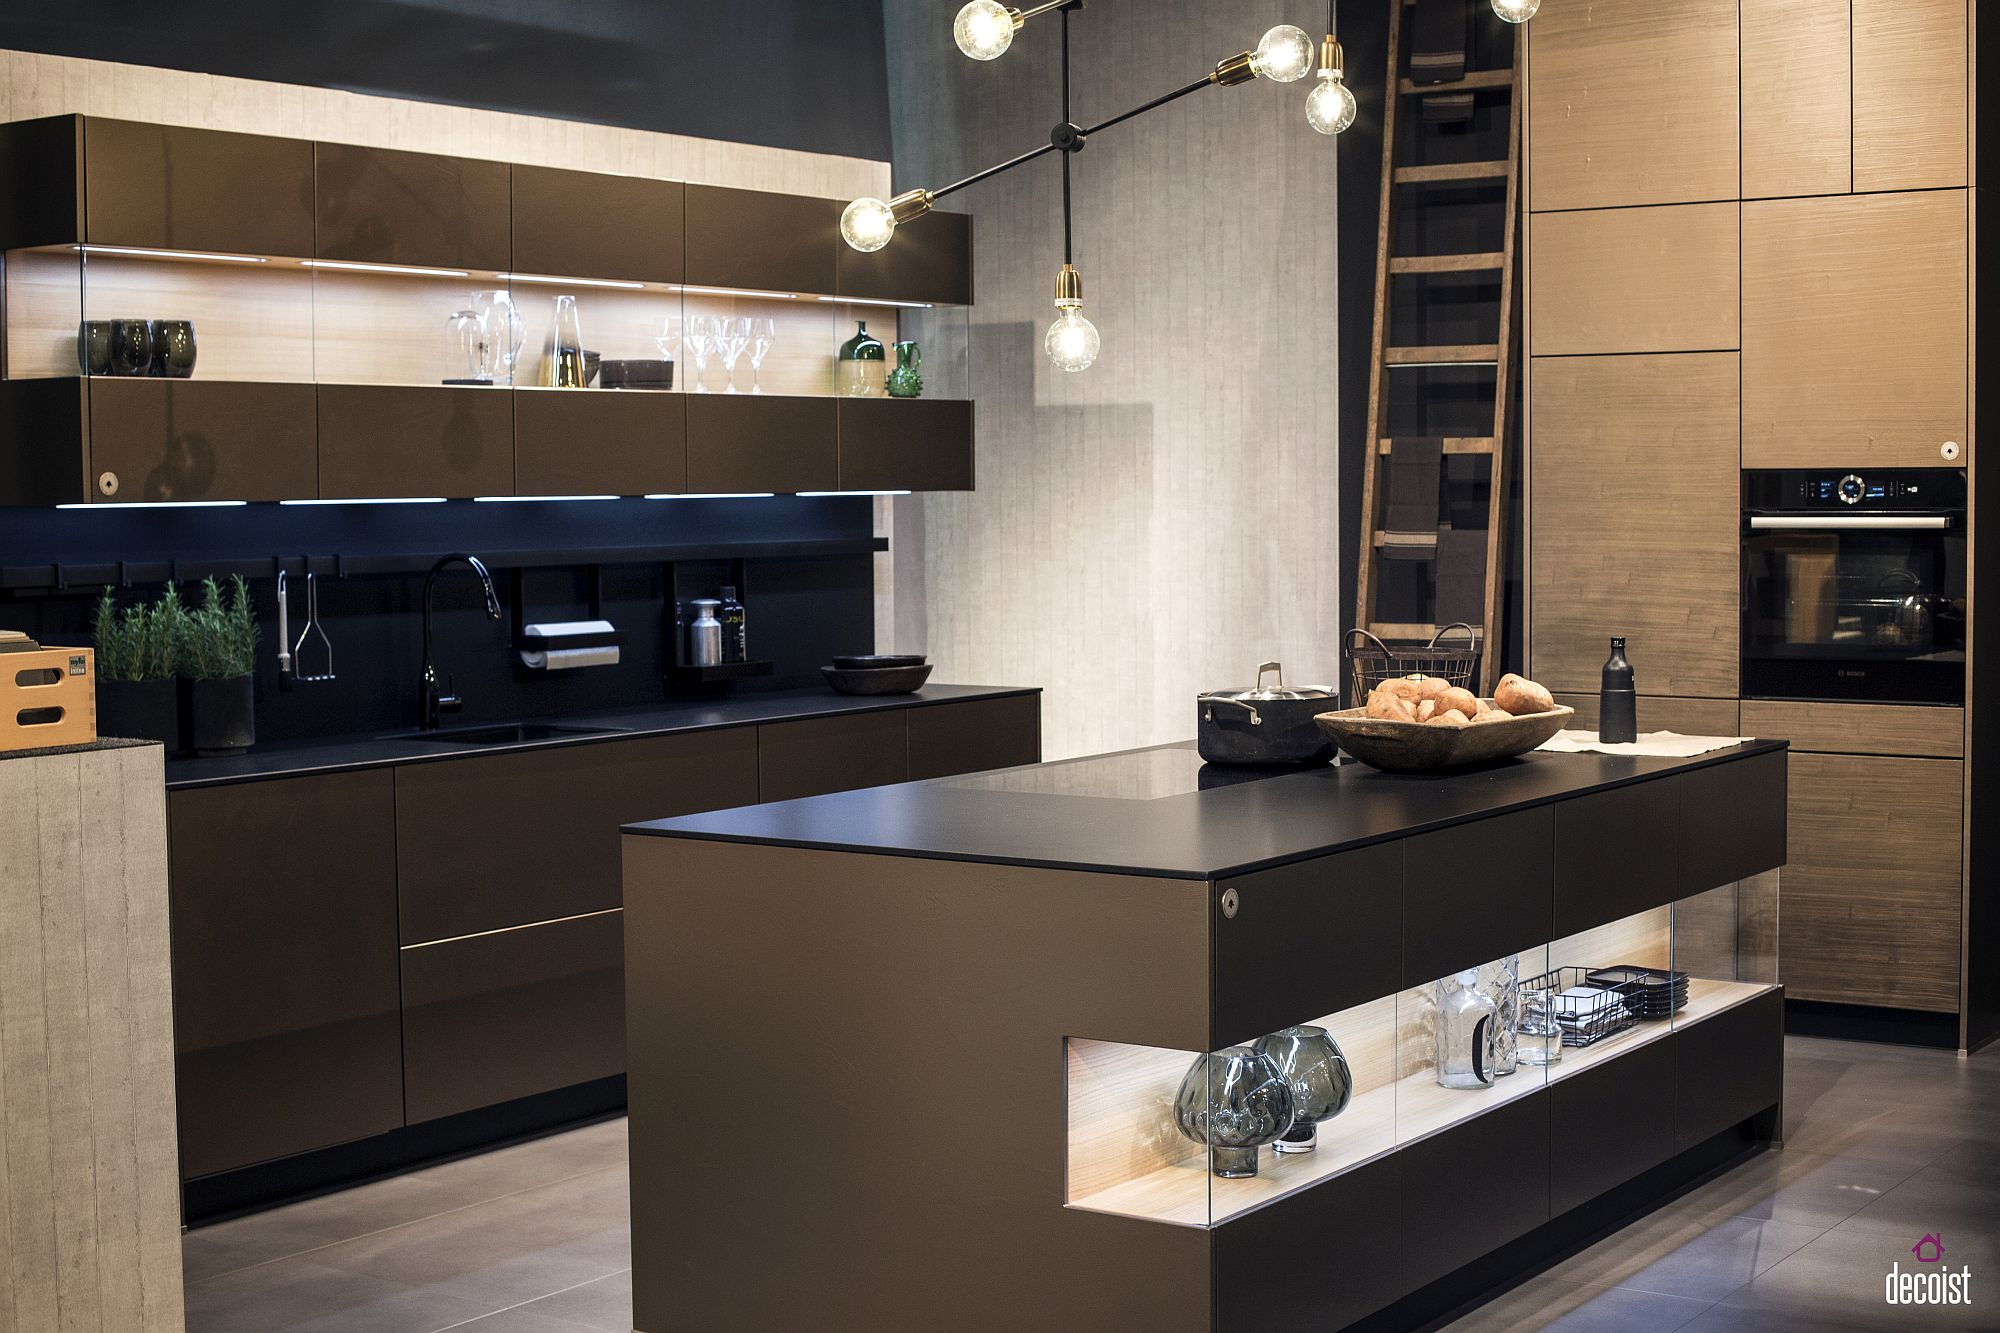 Decorating With Led Strip Lights Kitchens With Energy Efficient Radiance